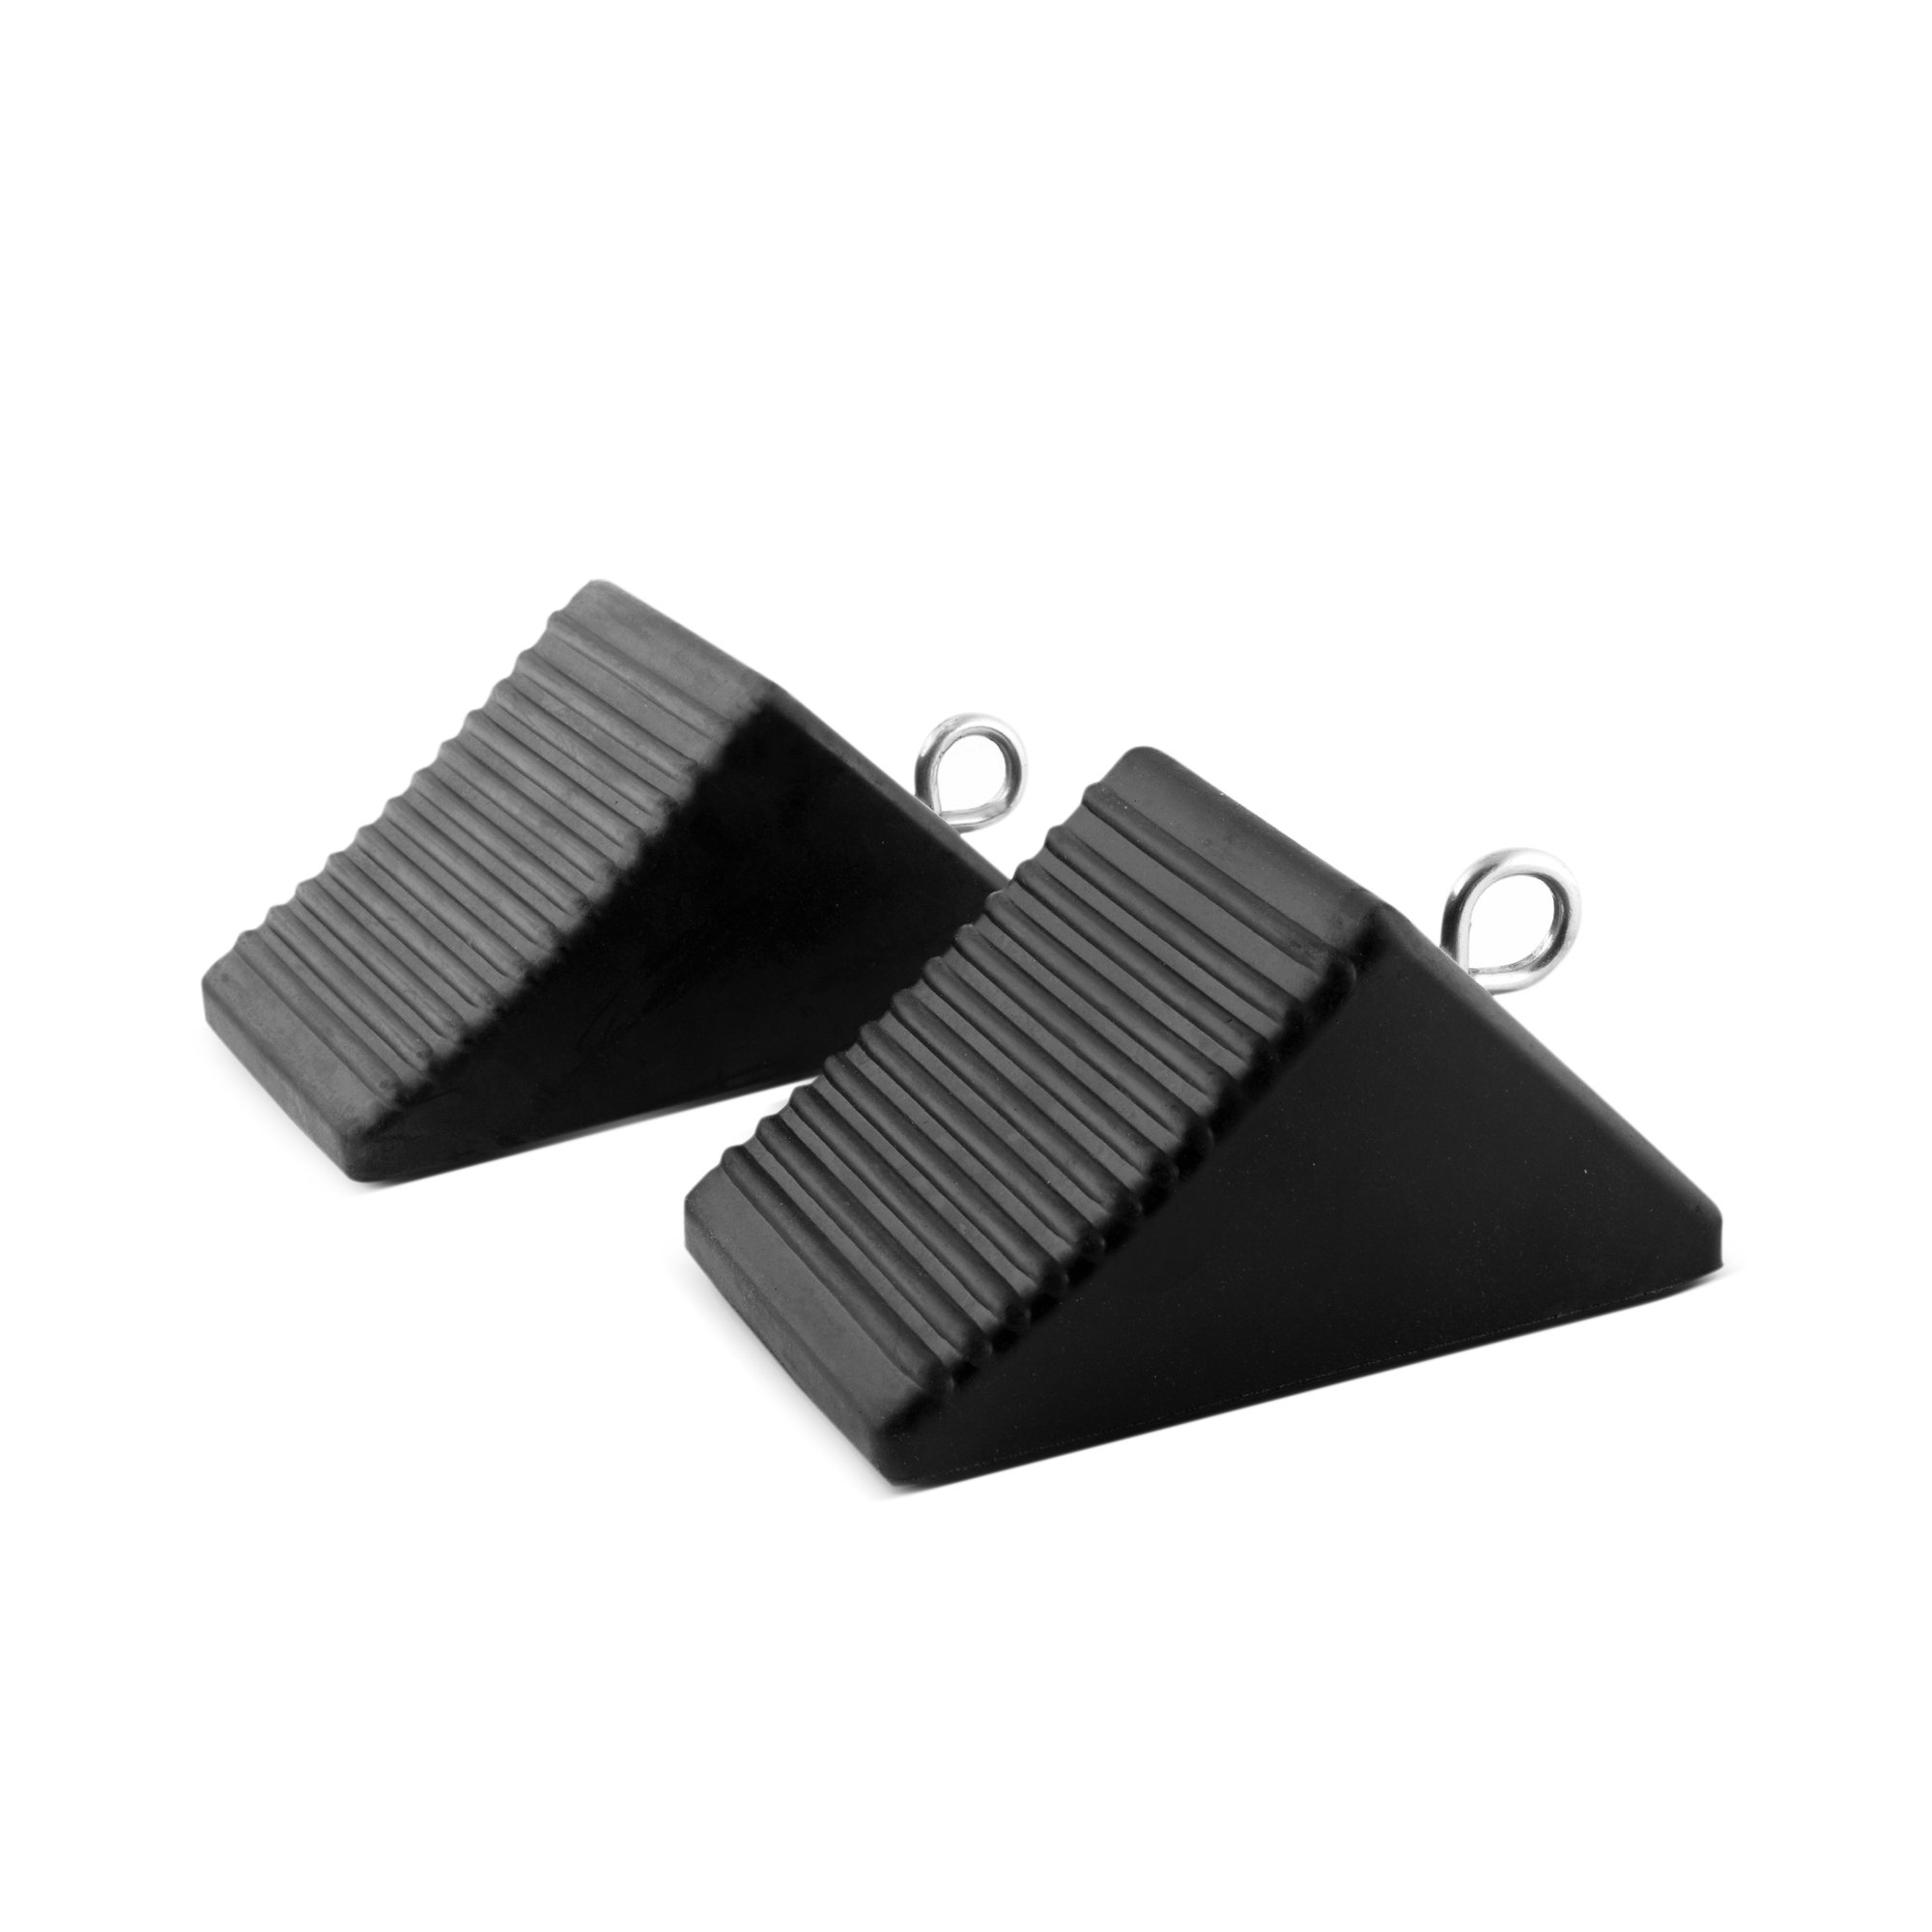 Approved for Automotive AFA Tooling Nylon Reinforced Set of Two Heavyweight Wheel Chocks with Eyebolts